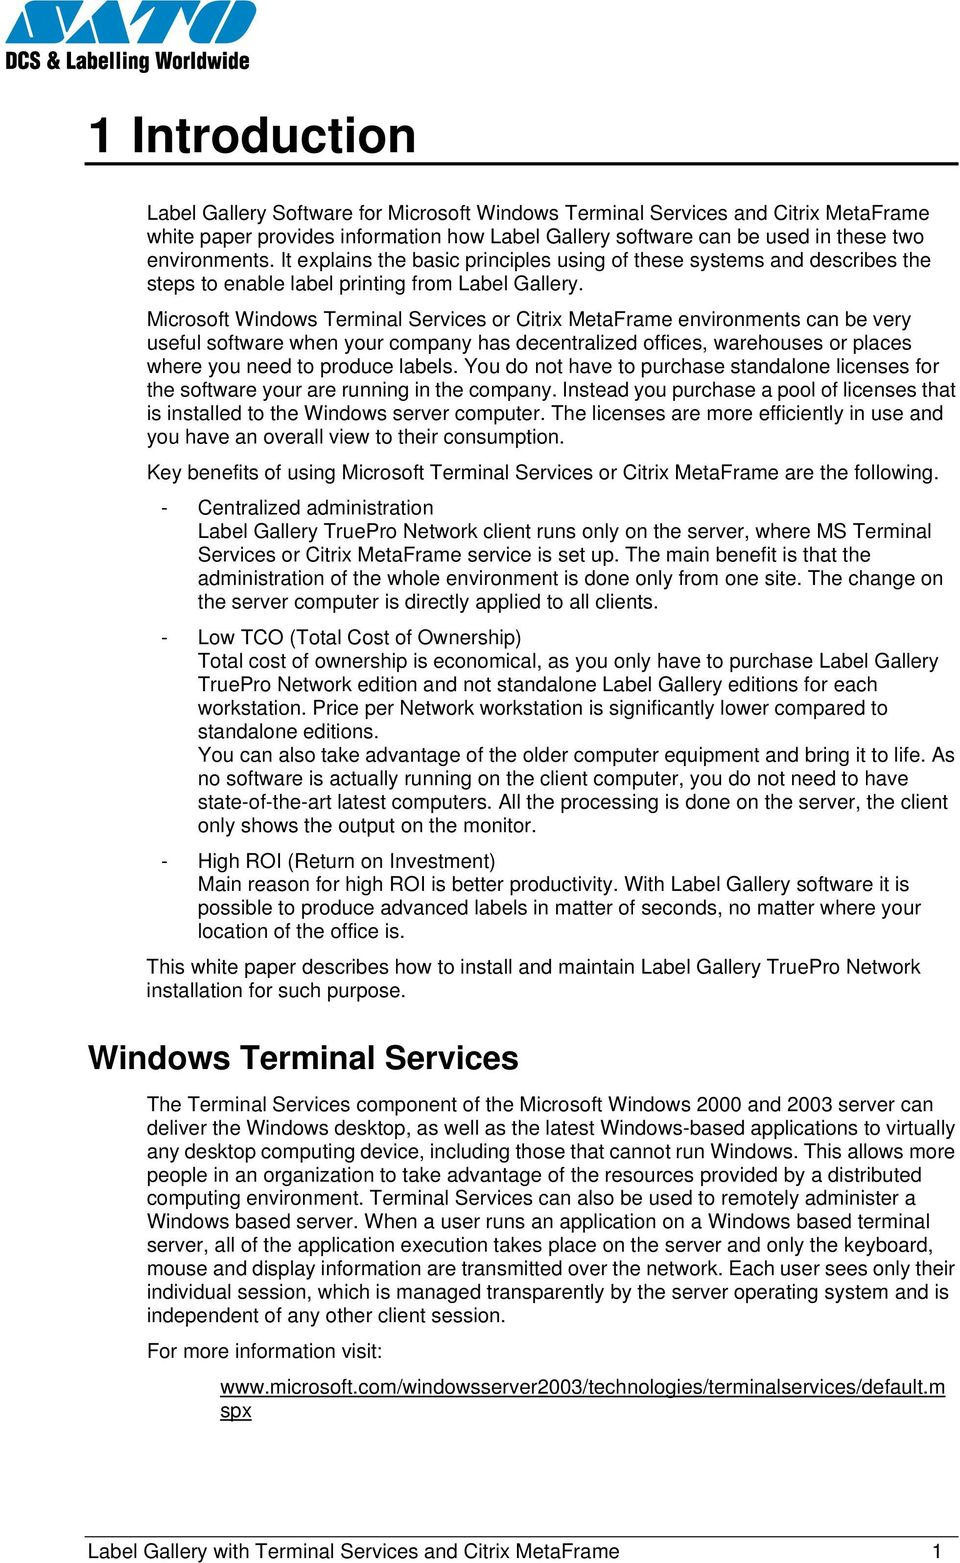 Microsoft Windows Terminal Services or Citrix MetaFrame environments can be very useful software when your company has decentralized offices, warehouses or places where you need to produce labels.